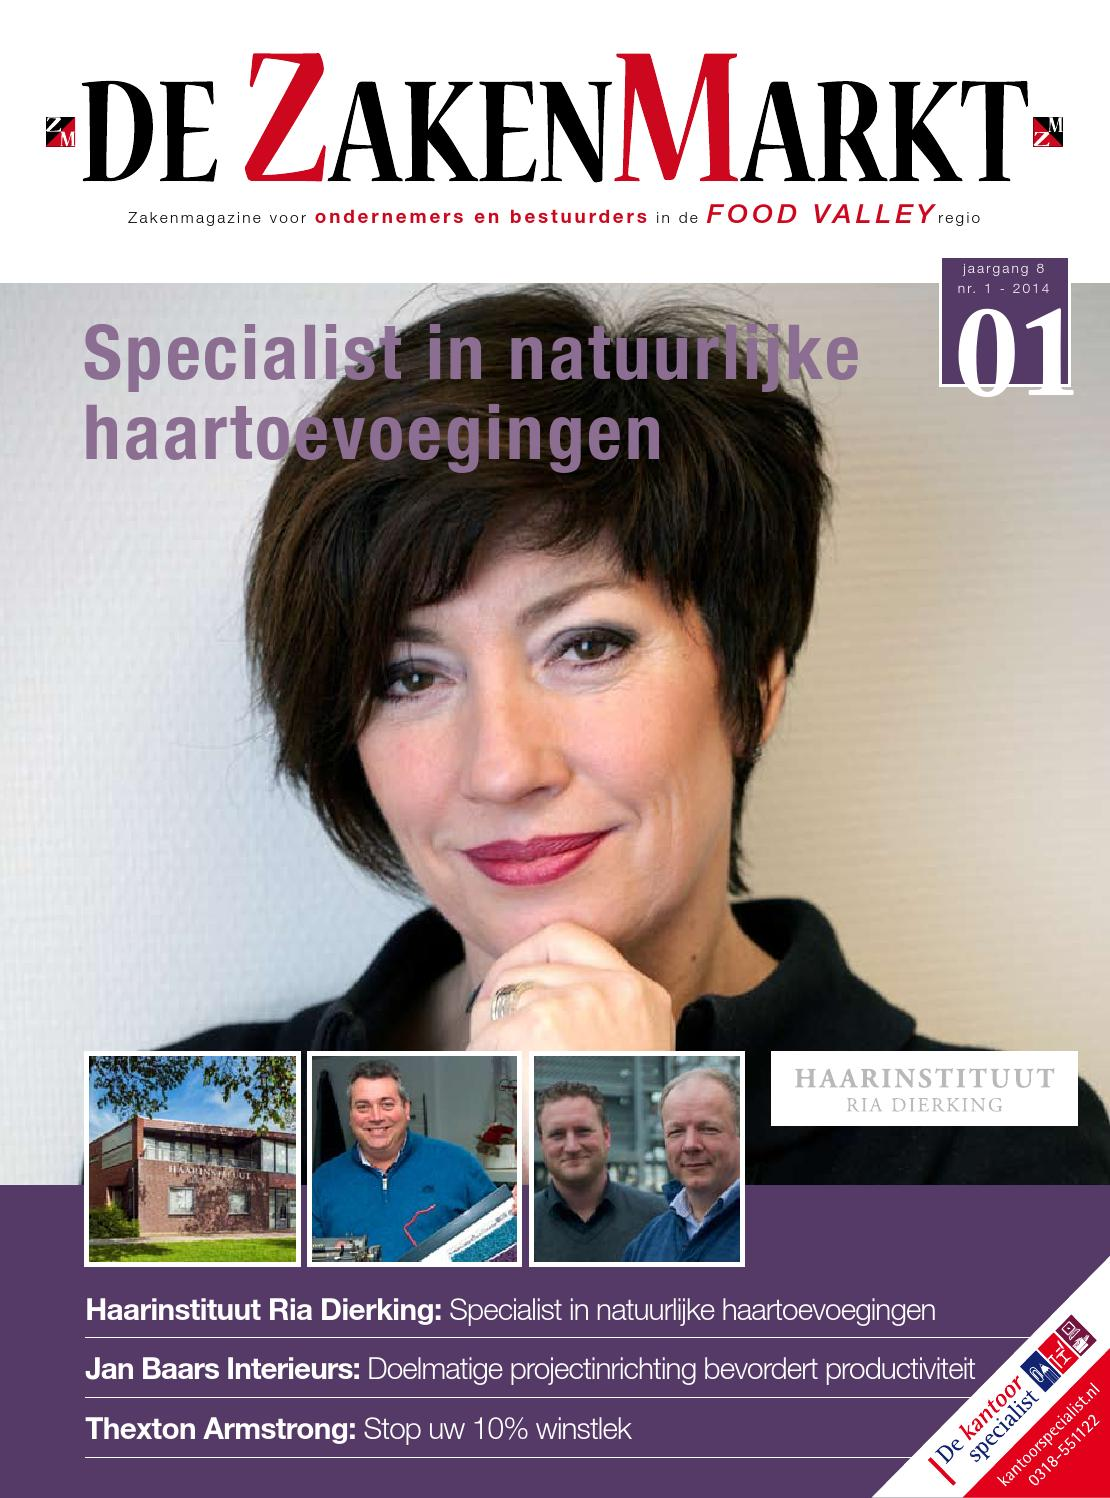 de zakenmarkt food valley regio nr 1 2014 by jez media services issuu